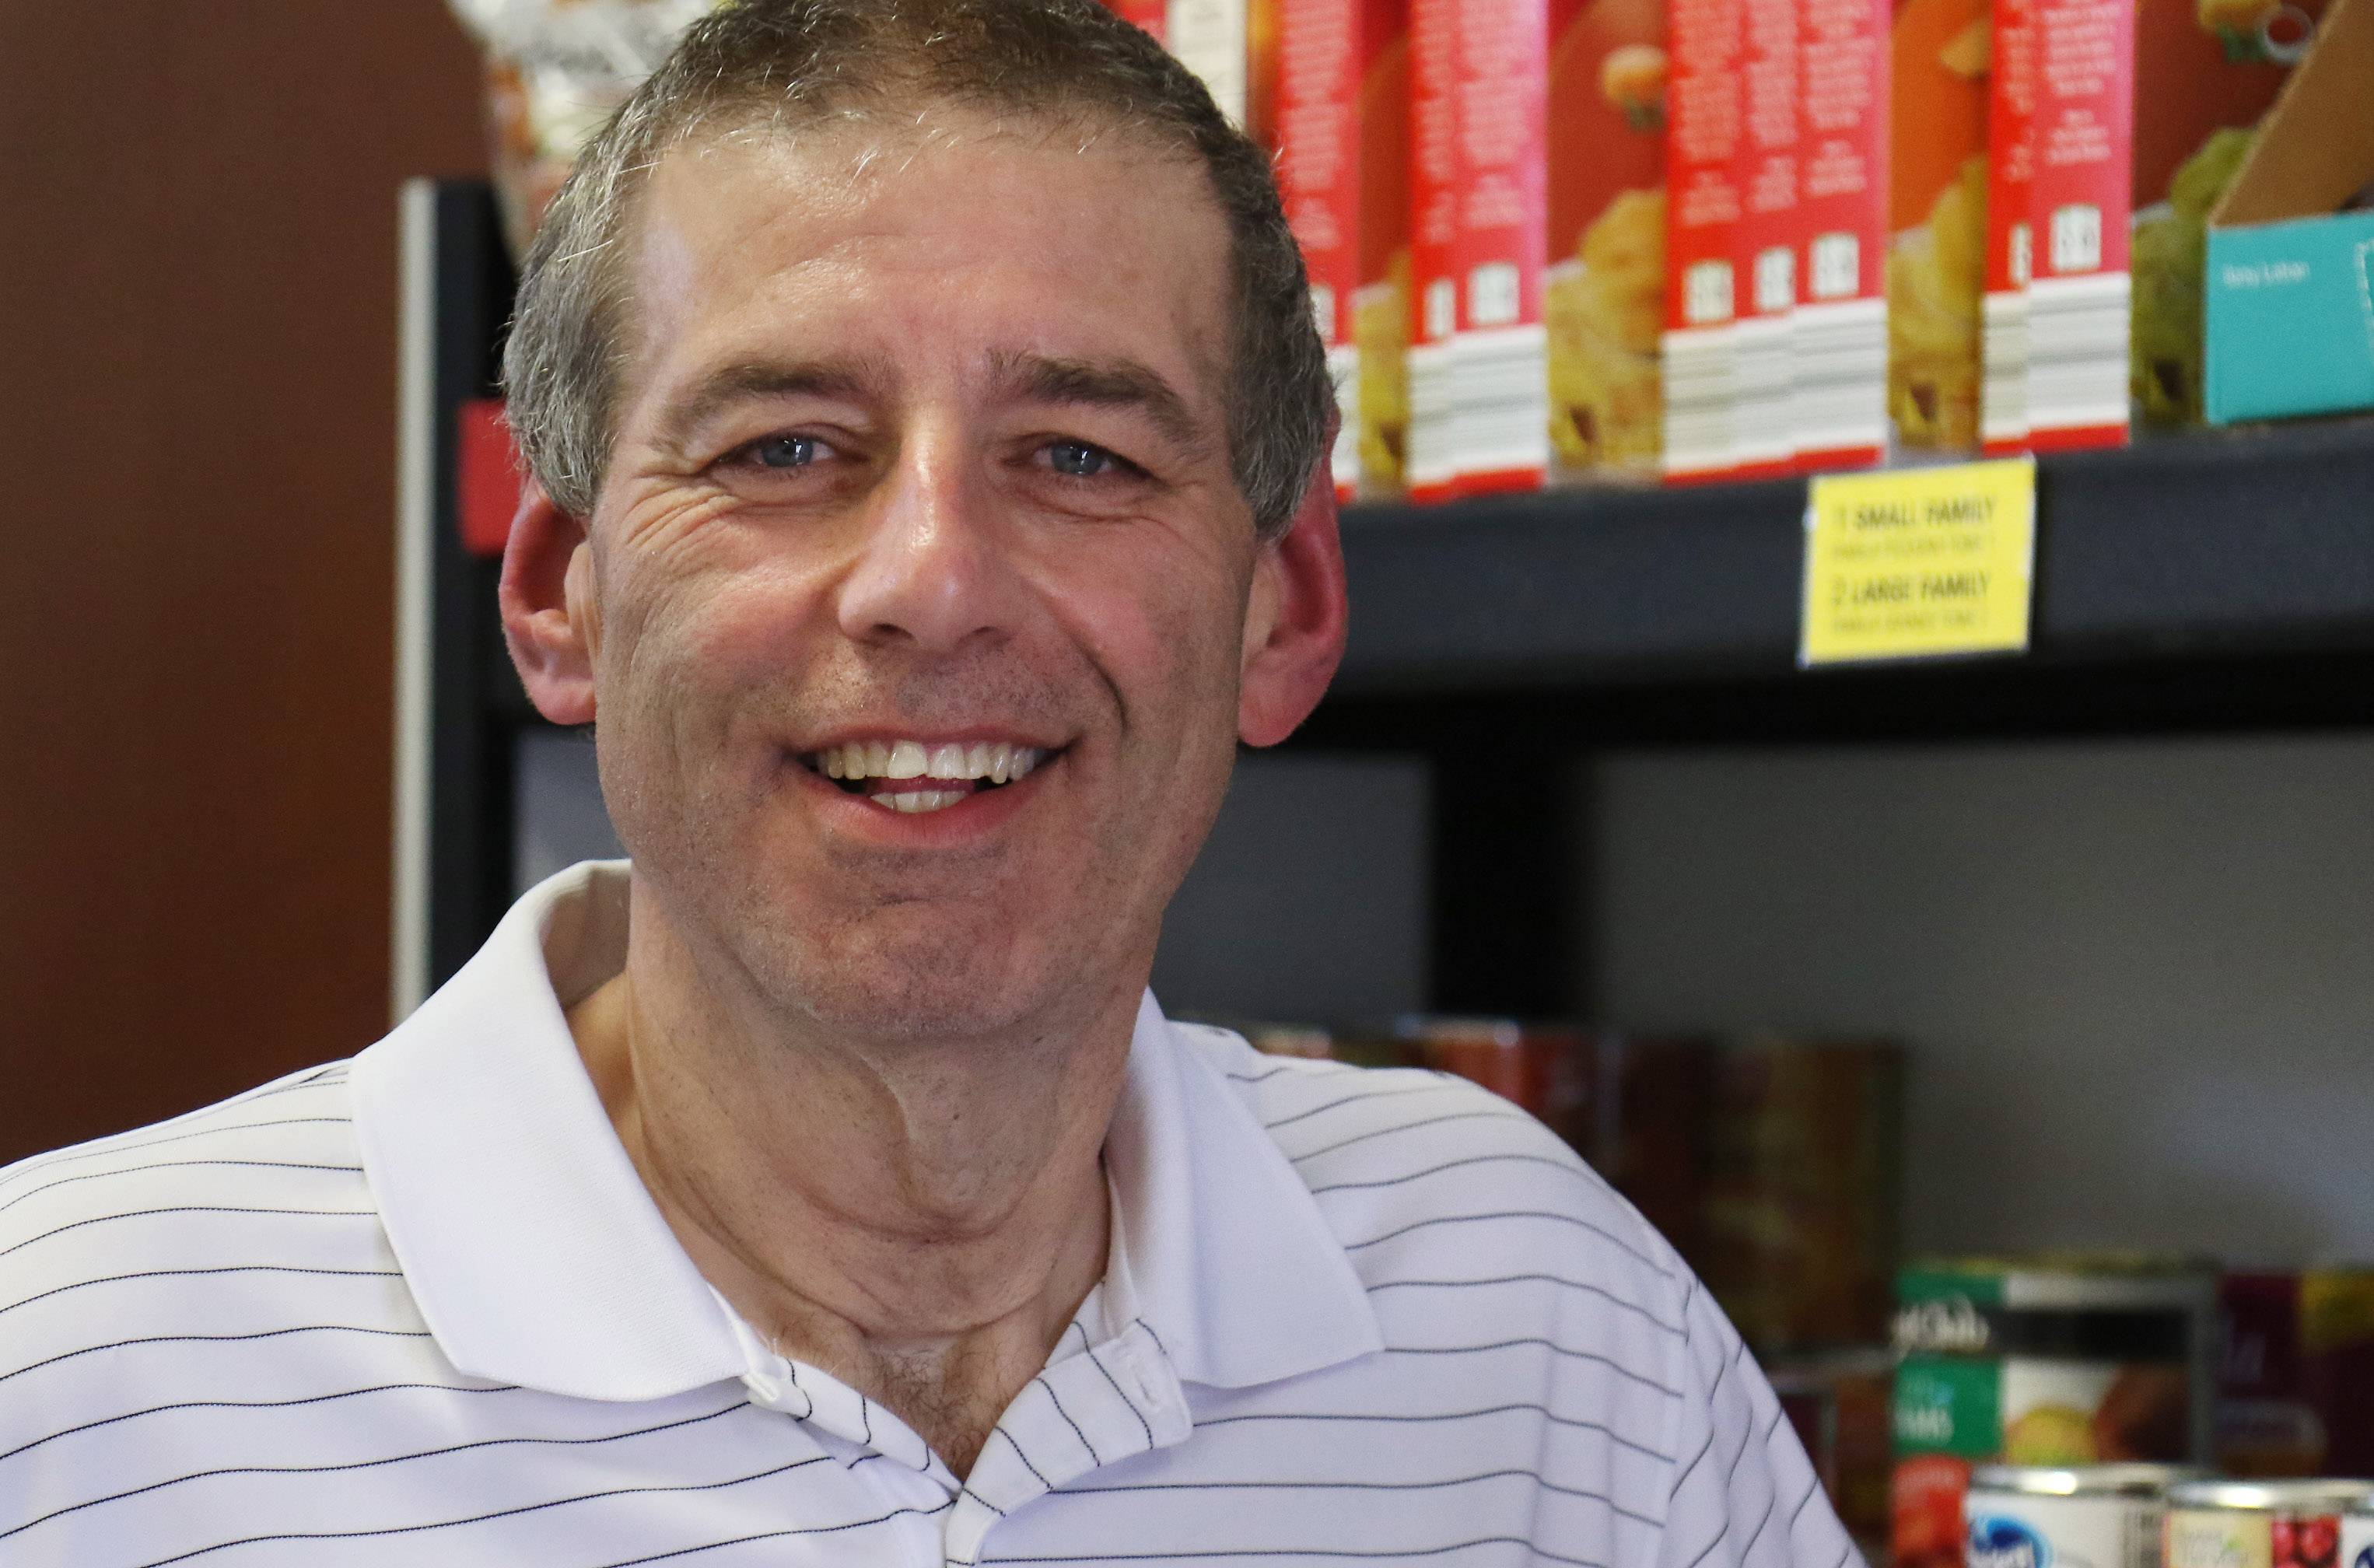 Wauconda resident Kevin Barnes is vice president on the board of the Wauconda-Island Lake Food Pantry. He says cancer has given him more compassion for others.